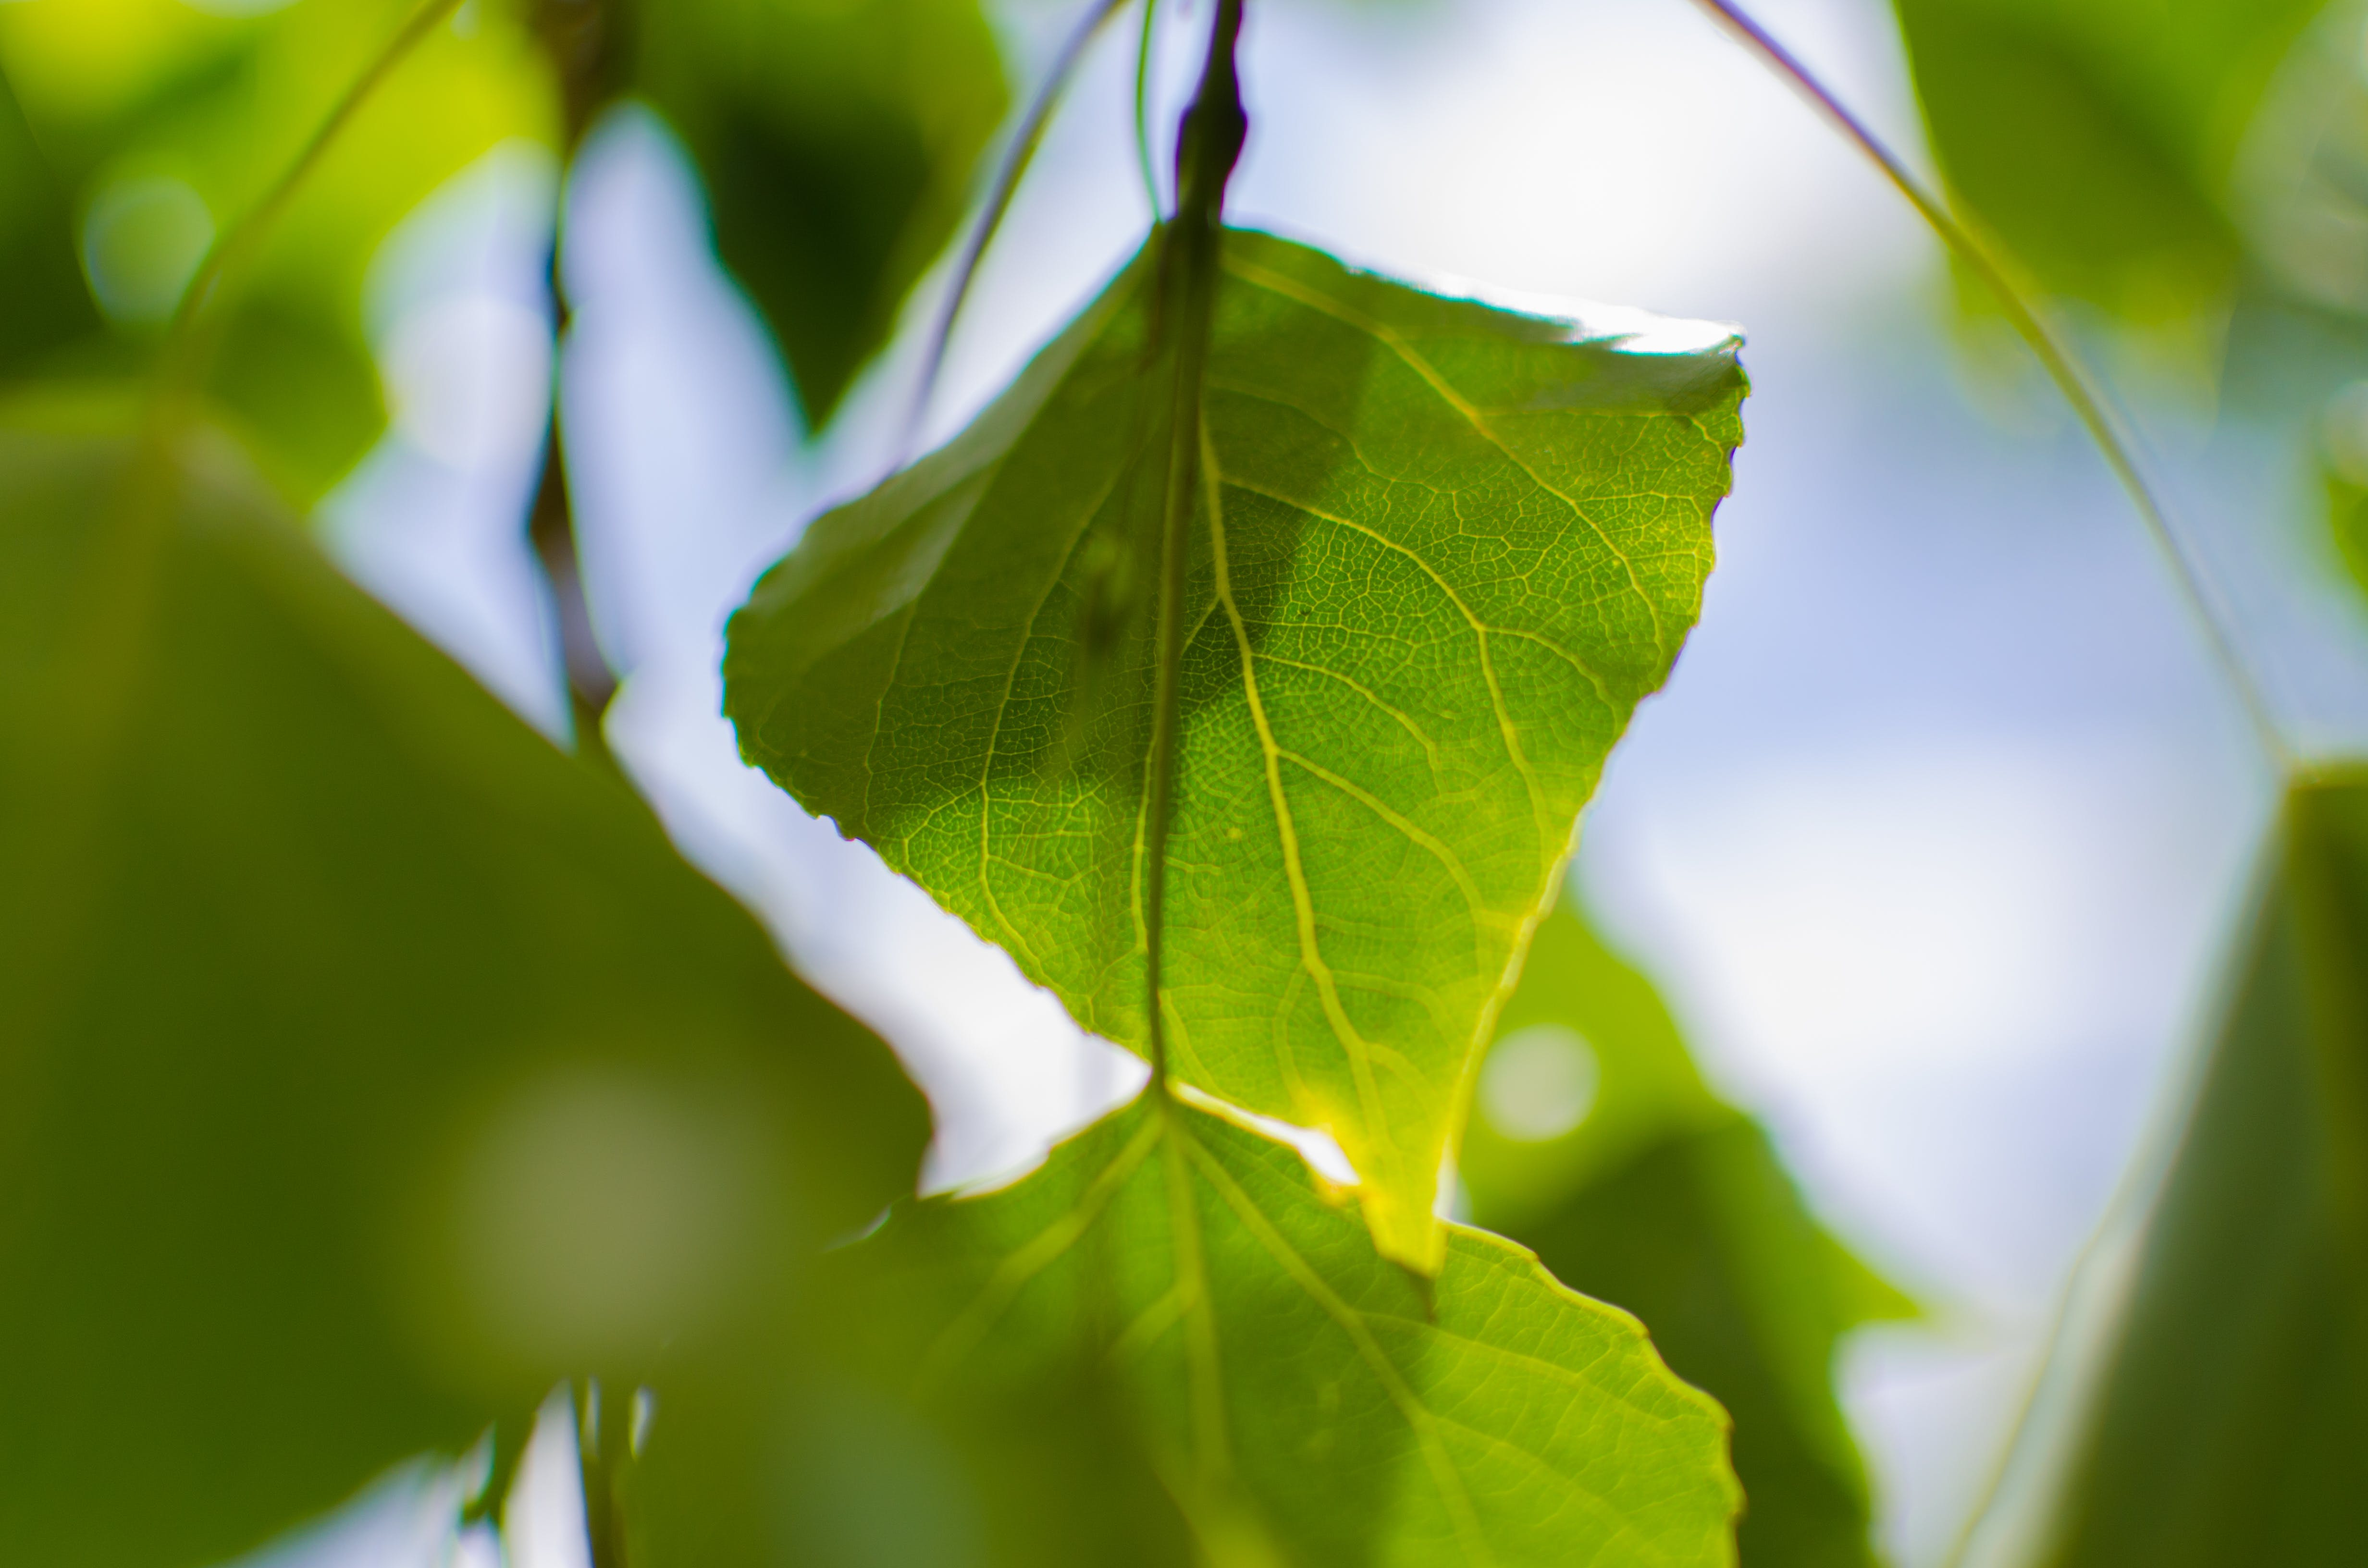 Close Up Photo of Green Leaf during Daytime